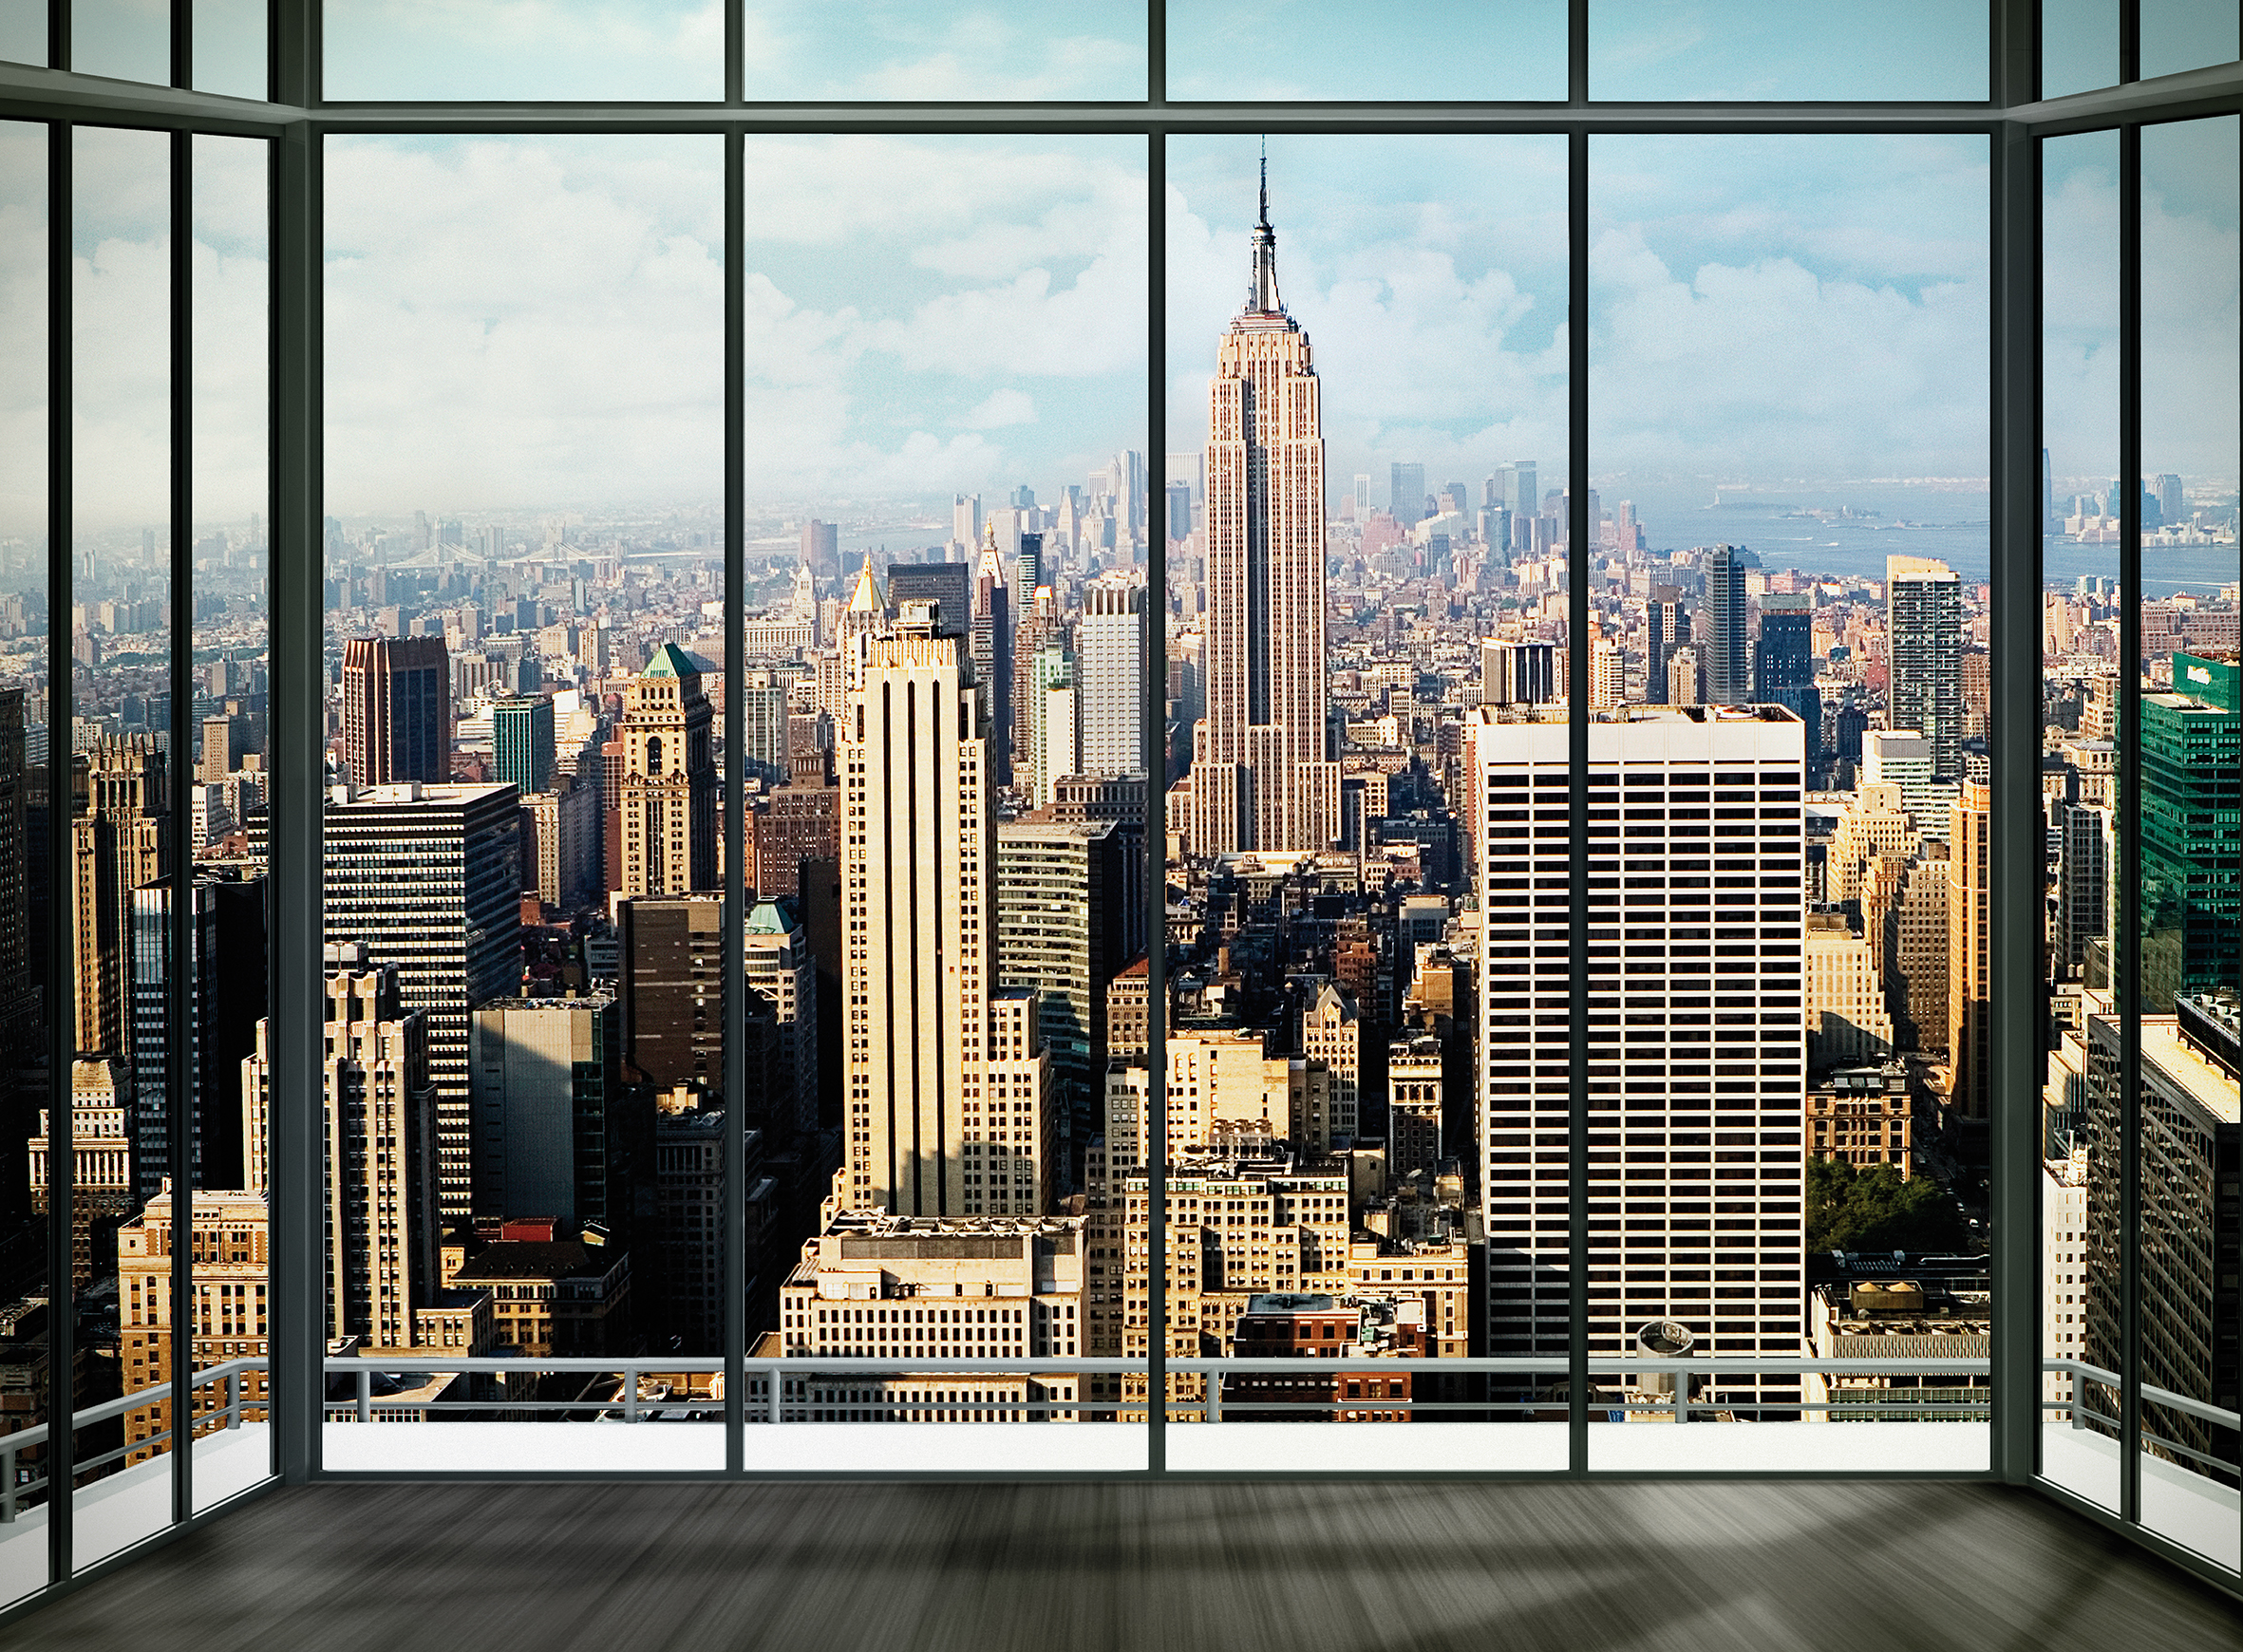 Wall Mural New York Skyline Window Wallsorts 2362x1740